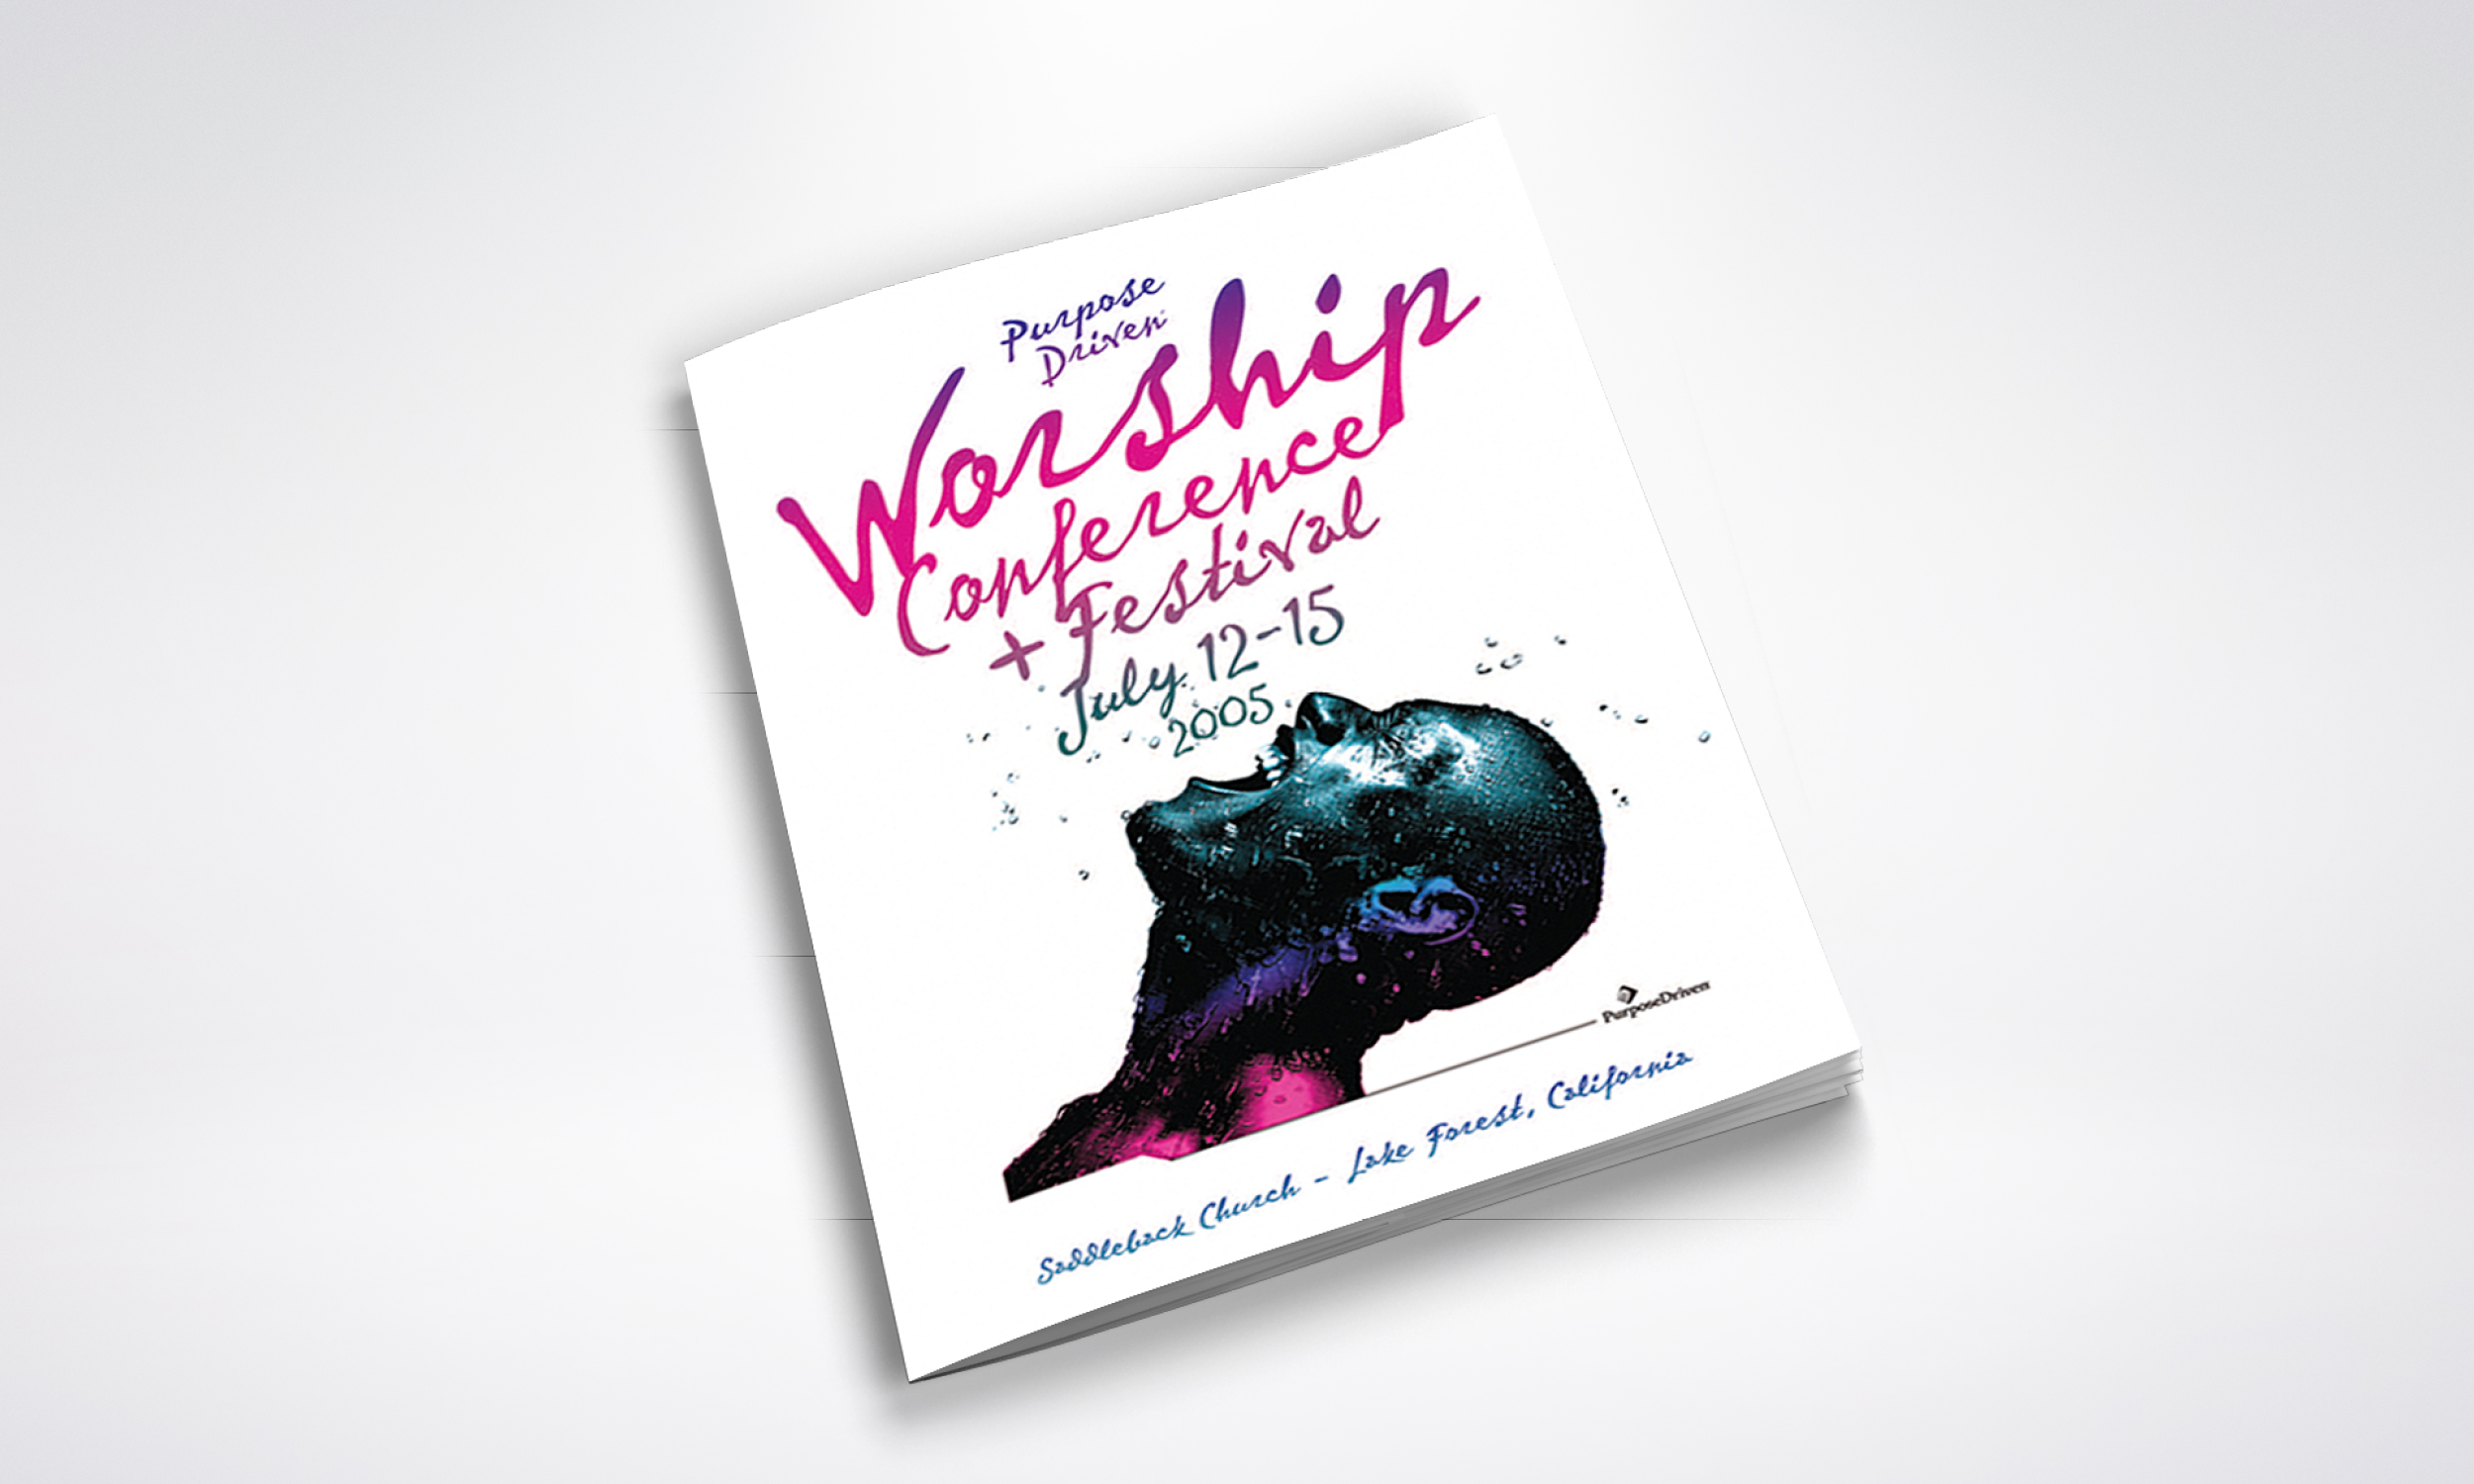 WHC Samples of Work - PDWC2 Cover.png